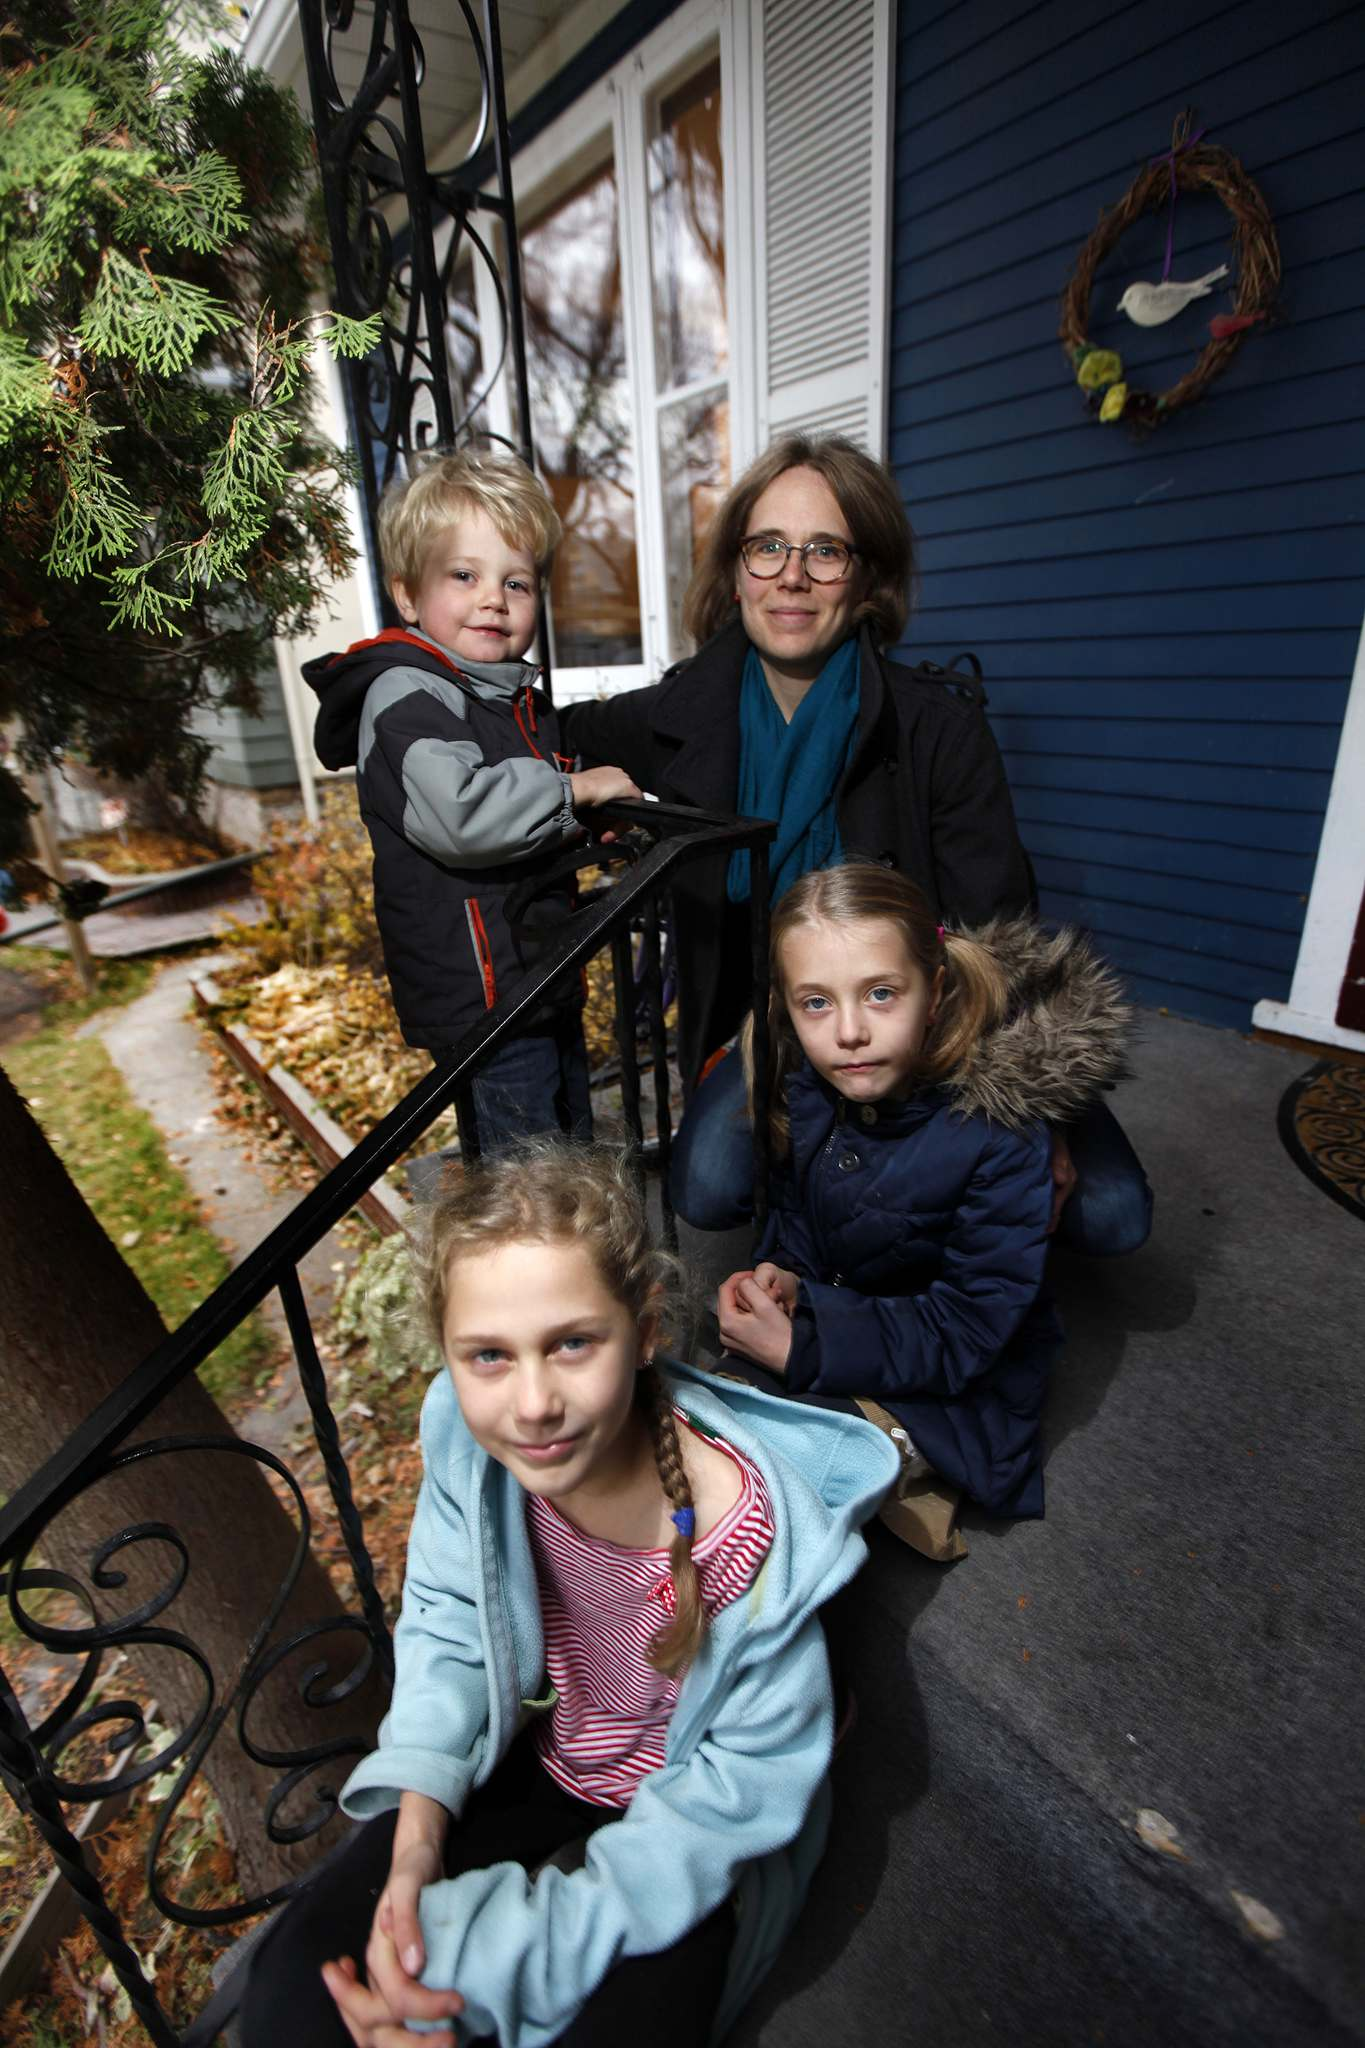 Katharina Nuss has started a petition urging Families Minister Heather Stefanson to tell CFS to back off and allow free-range parenting. She's shown with her children, nine-year-old Frieda (bottom), seven-year-old Johanna and Raphael, 3. (Winnipeg Free Press files)</p>